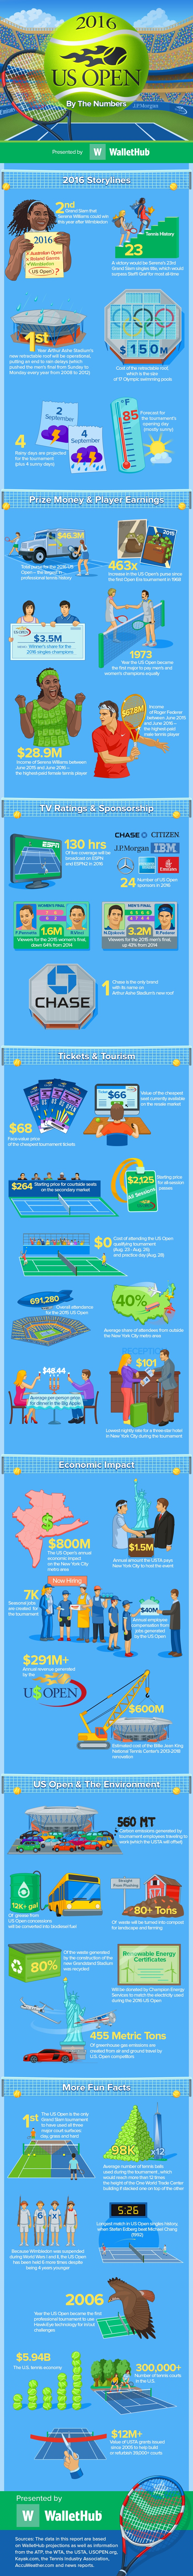 2016-US-Open-By-The-Numbers-fix4